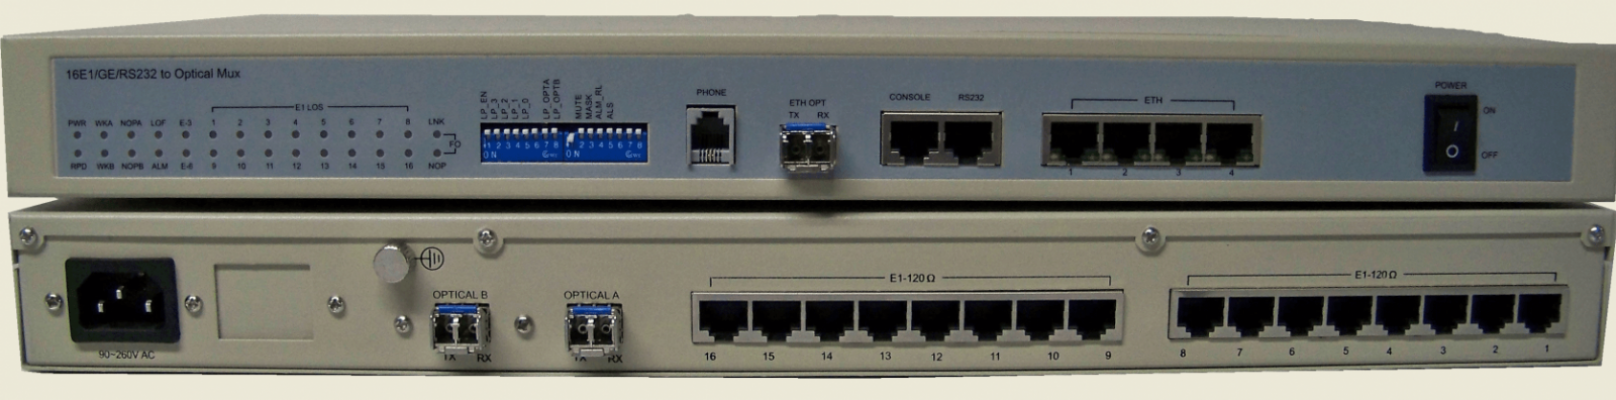 8 E1 G.703 + 5 x 10/100/1000 GE over fiber multiplexer with smart GUI and dot1Q, QoS and shaping